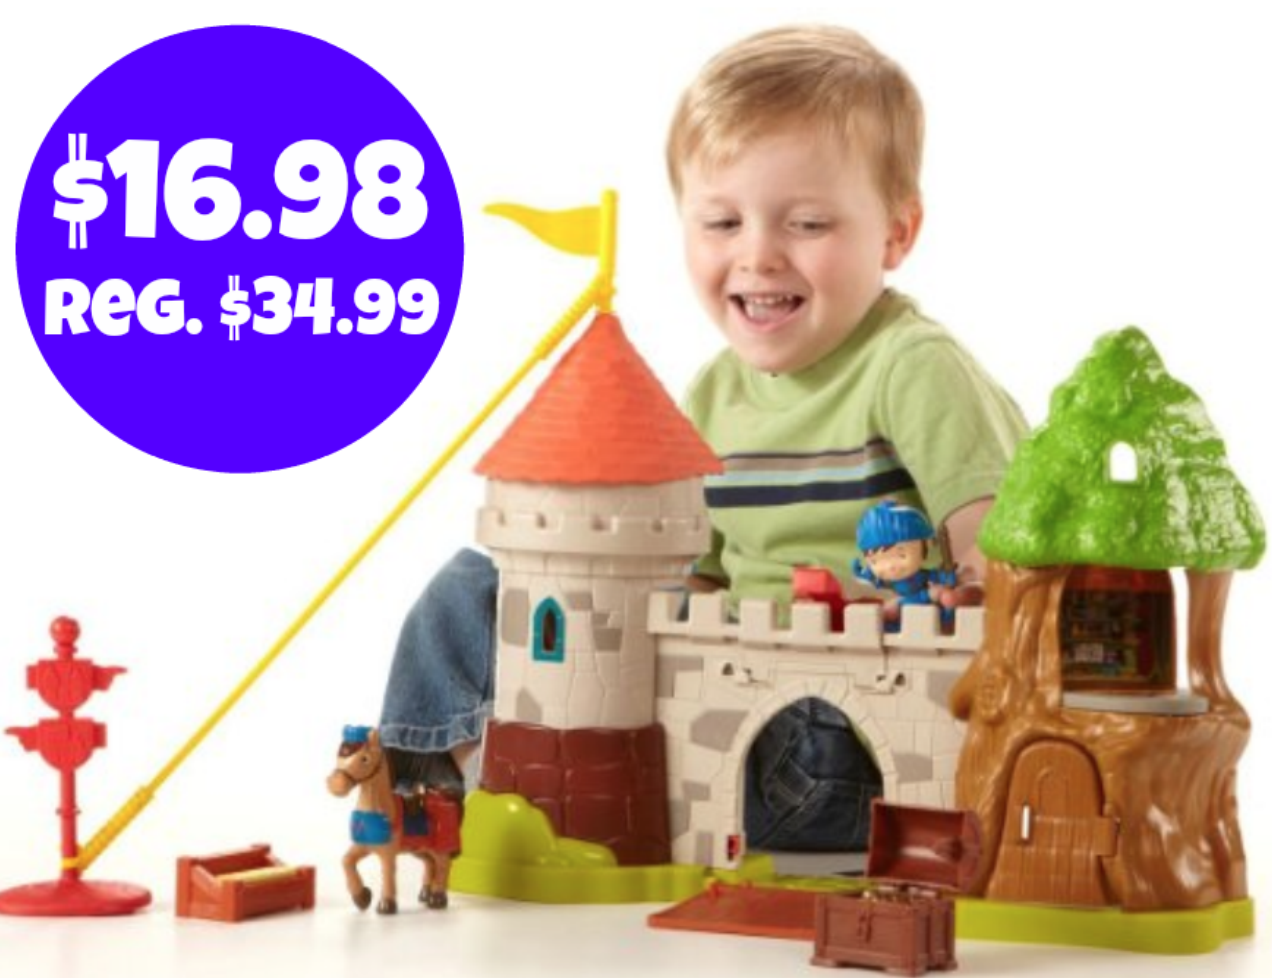 Amazon: Fisher-Price Mike The Knight: Glendragon Castle Playset (plays noises & sounds!) = $16.98! Regularly $34.99!